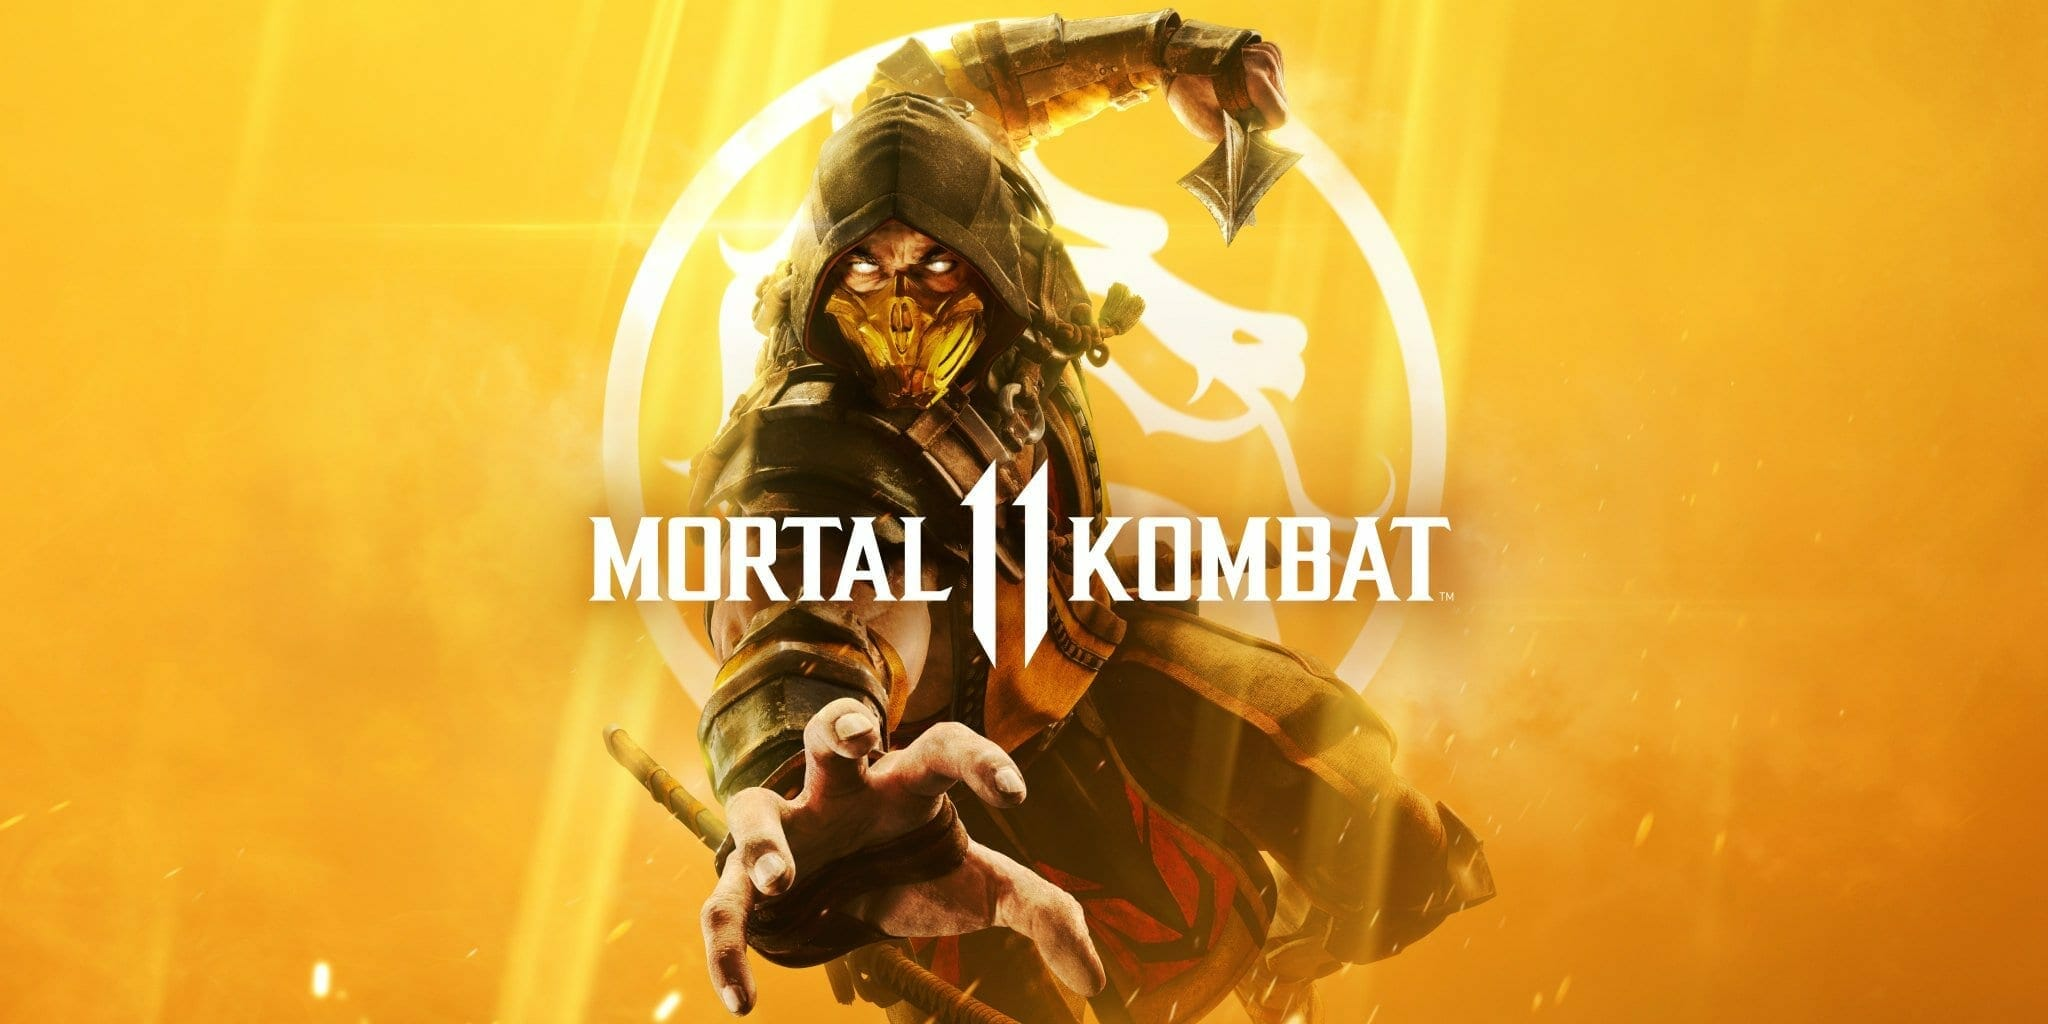 NetherRealm Studios Reveals First DLC Character For Mortal Kombat 11